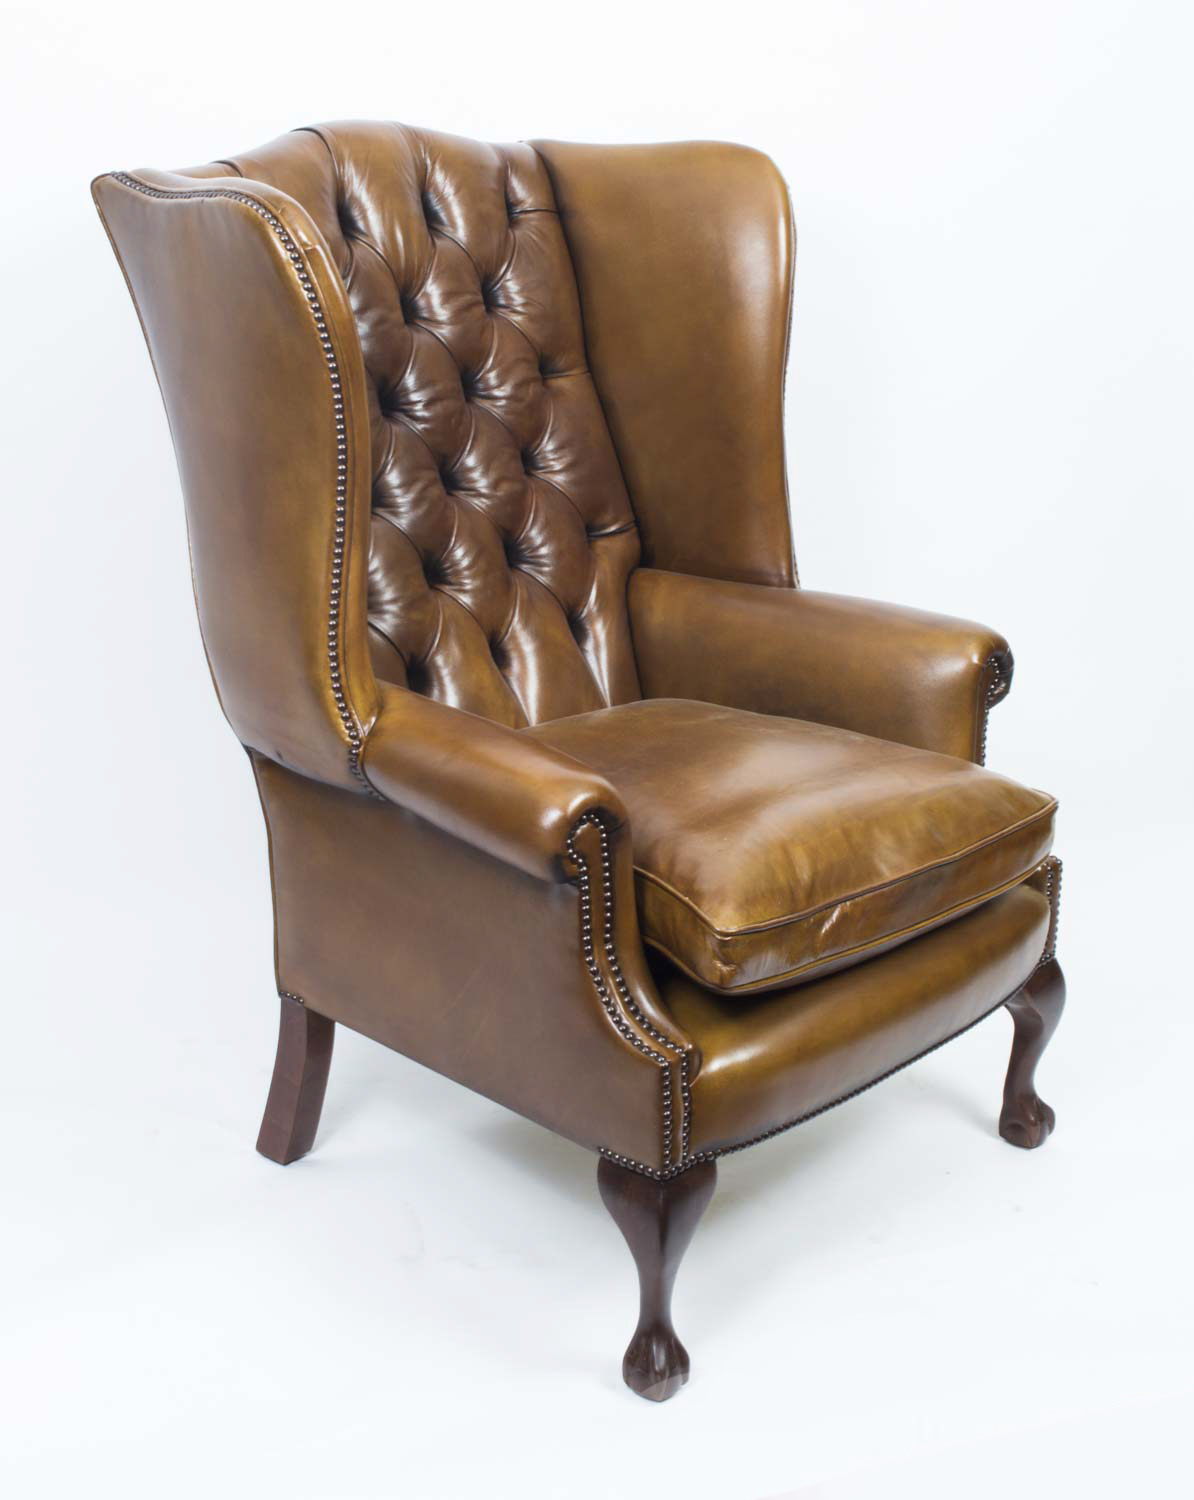 Leather Wing Back Chair Leather Chippendale Wing Back Chair Armchair Yellow Tan